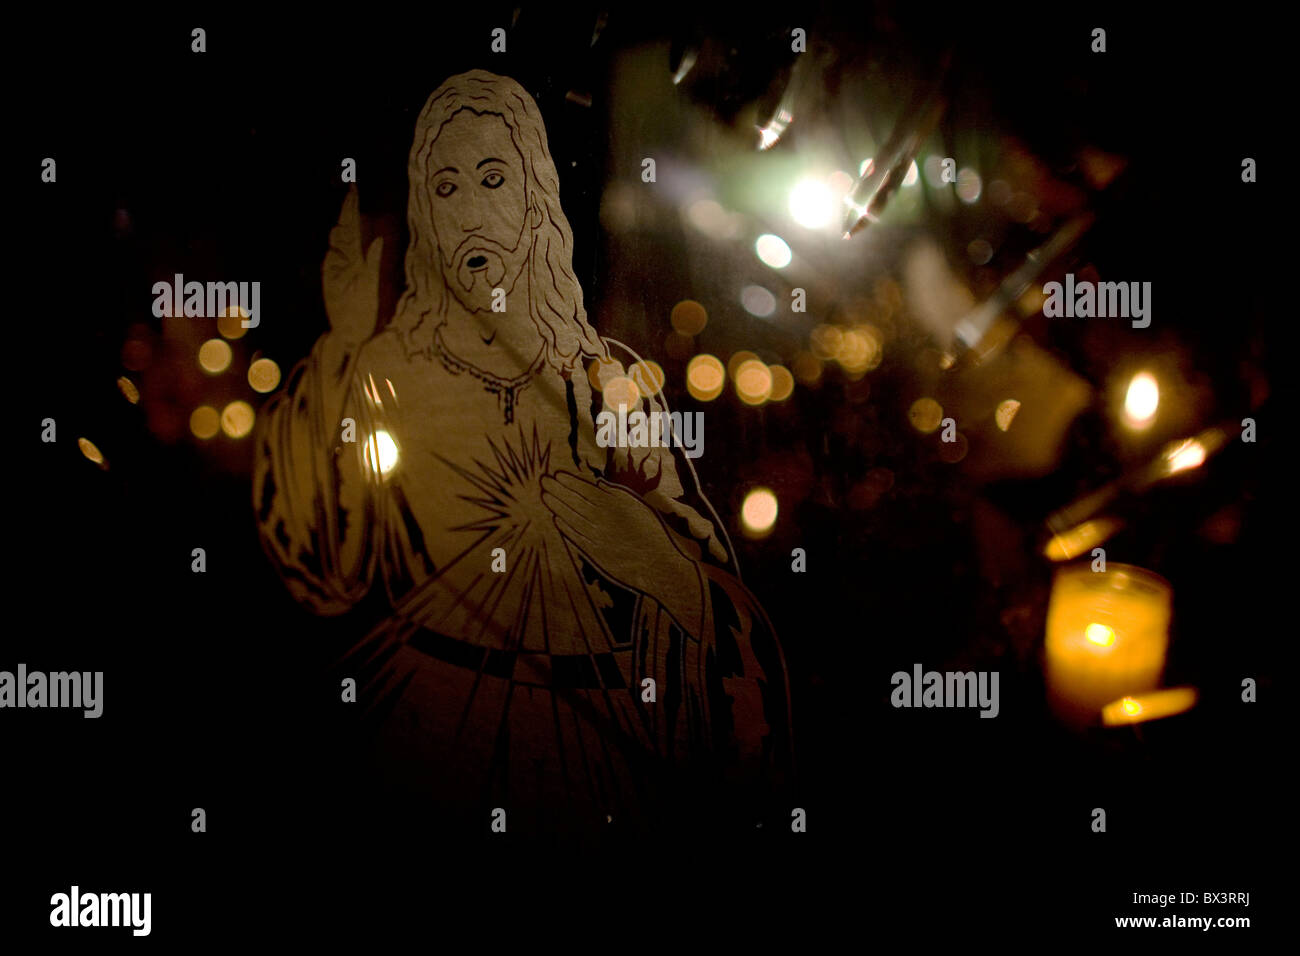 A transparency of Jesus Christ decorates the glass window of a tomb at the cemetery in Xochimilco, Mexico City - Stock Image